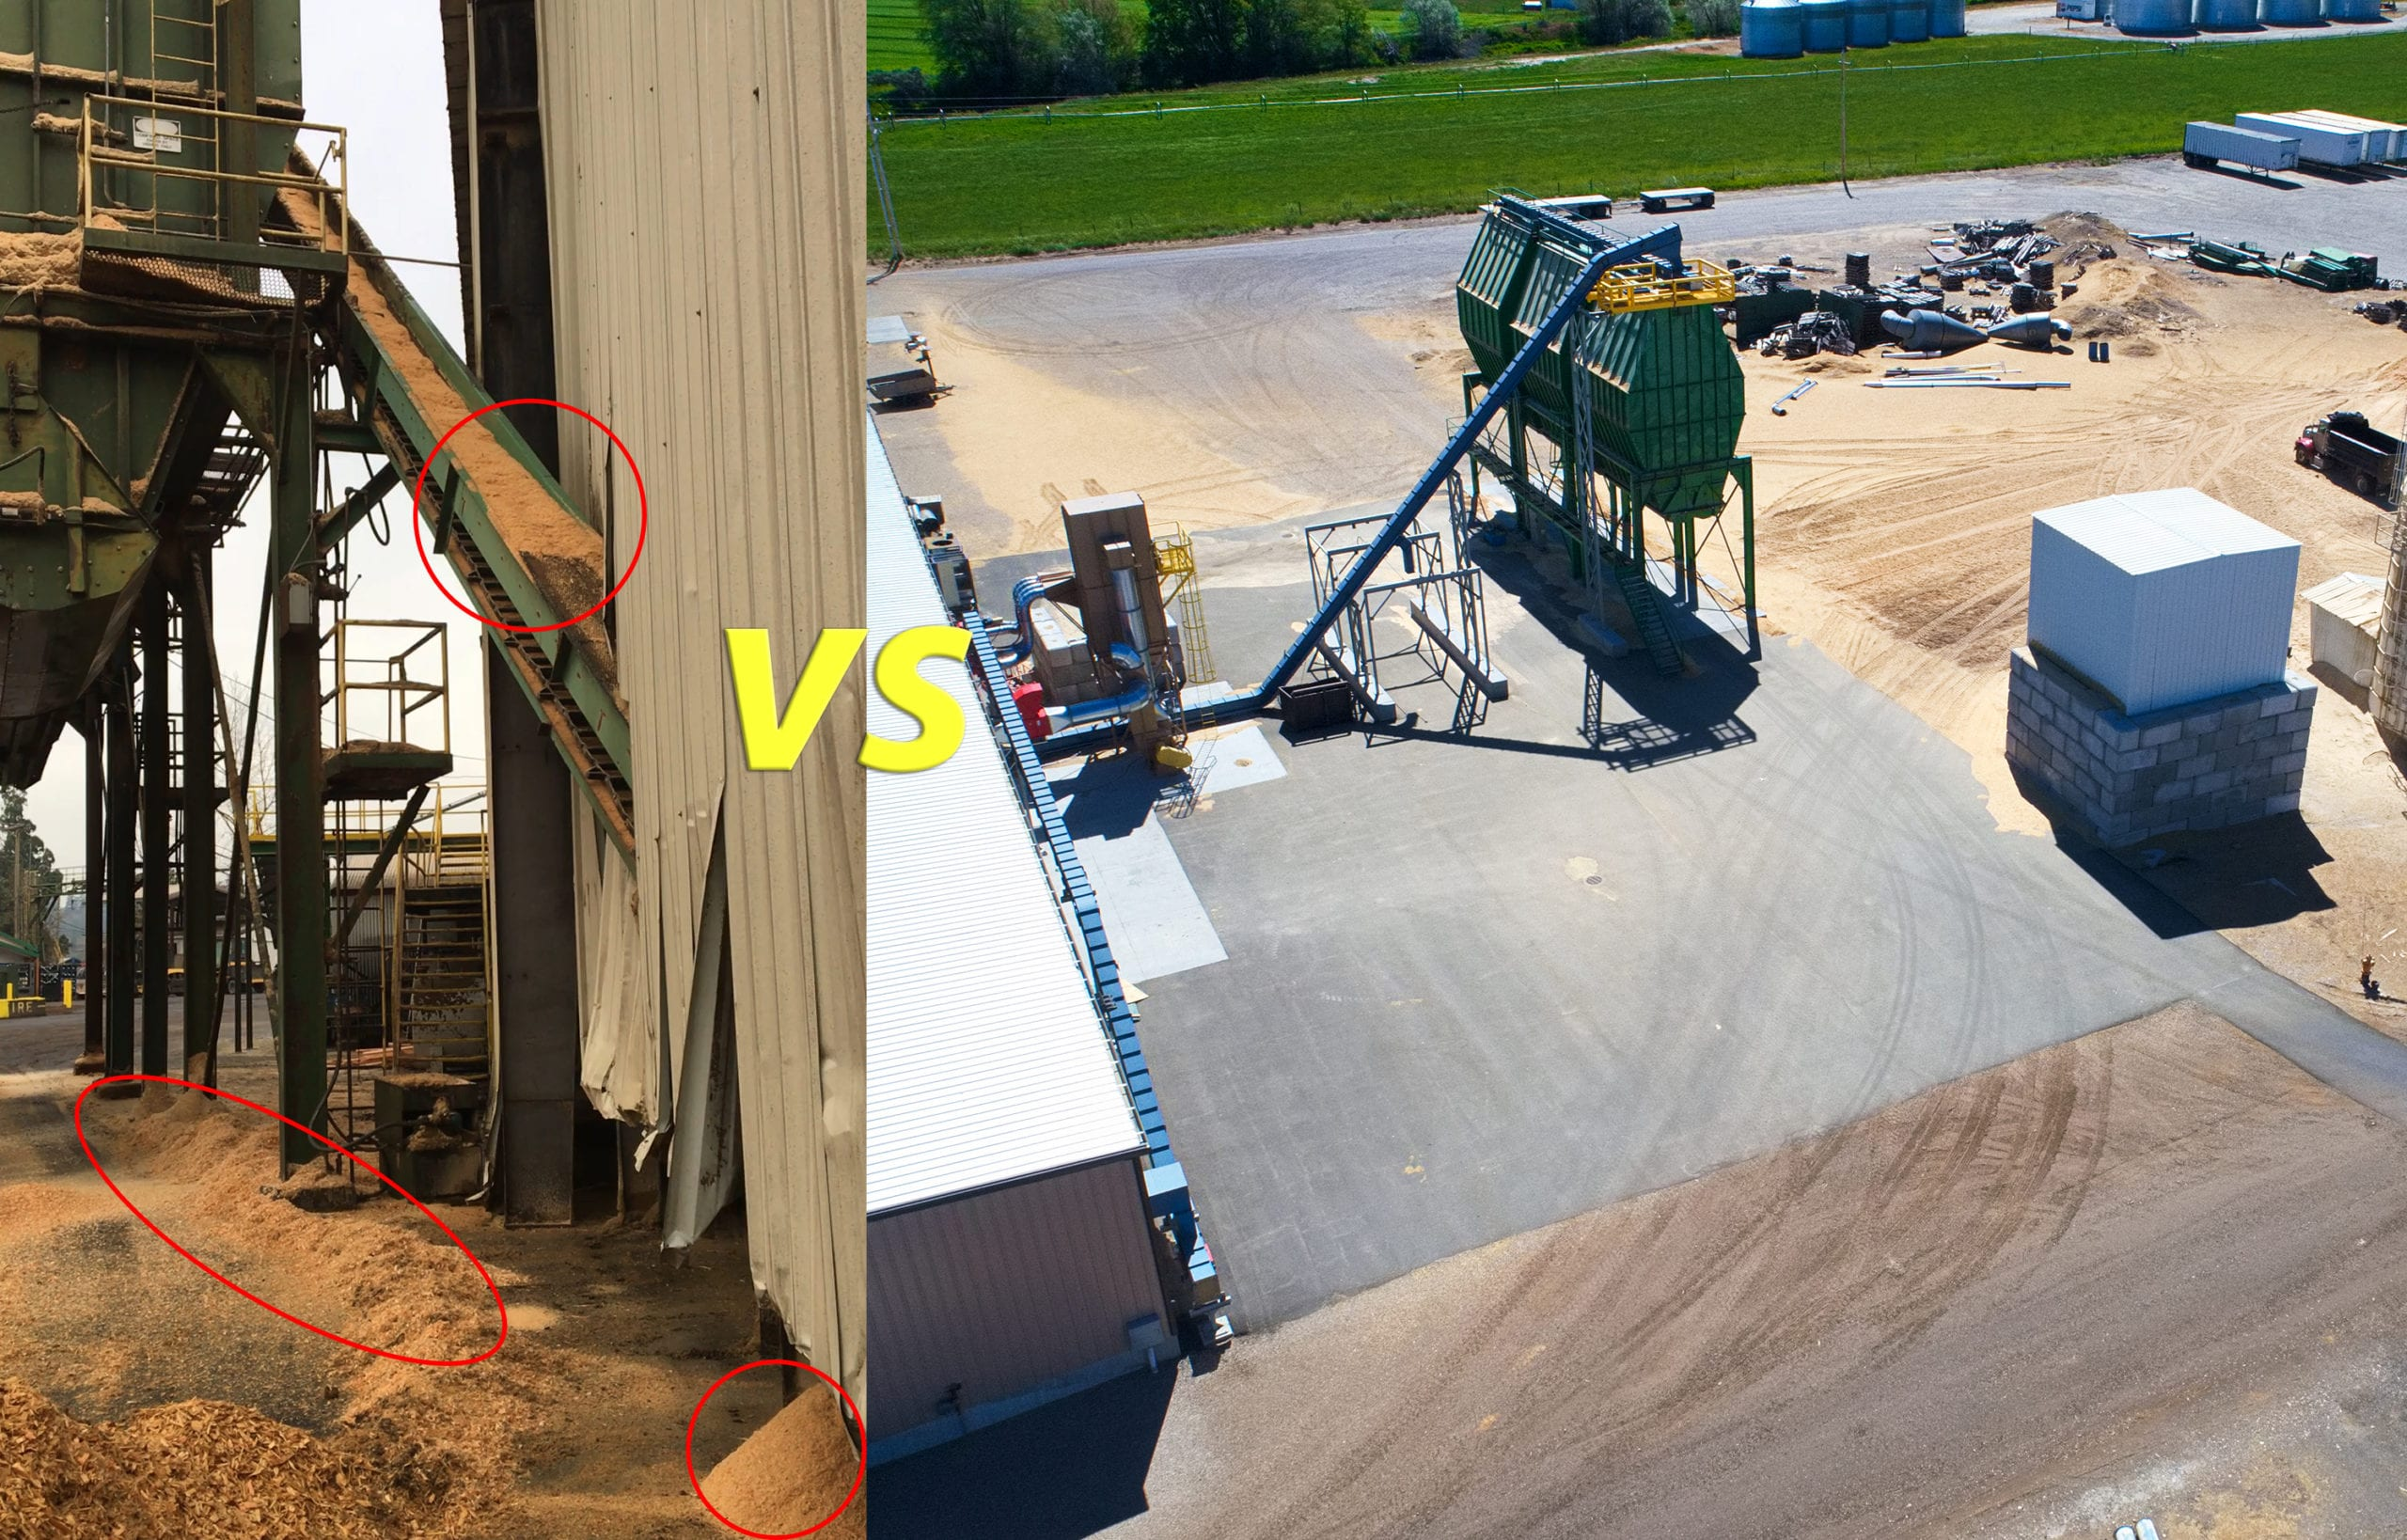 dust-tight conveyors and material handling equipment.